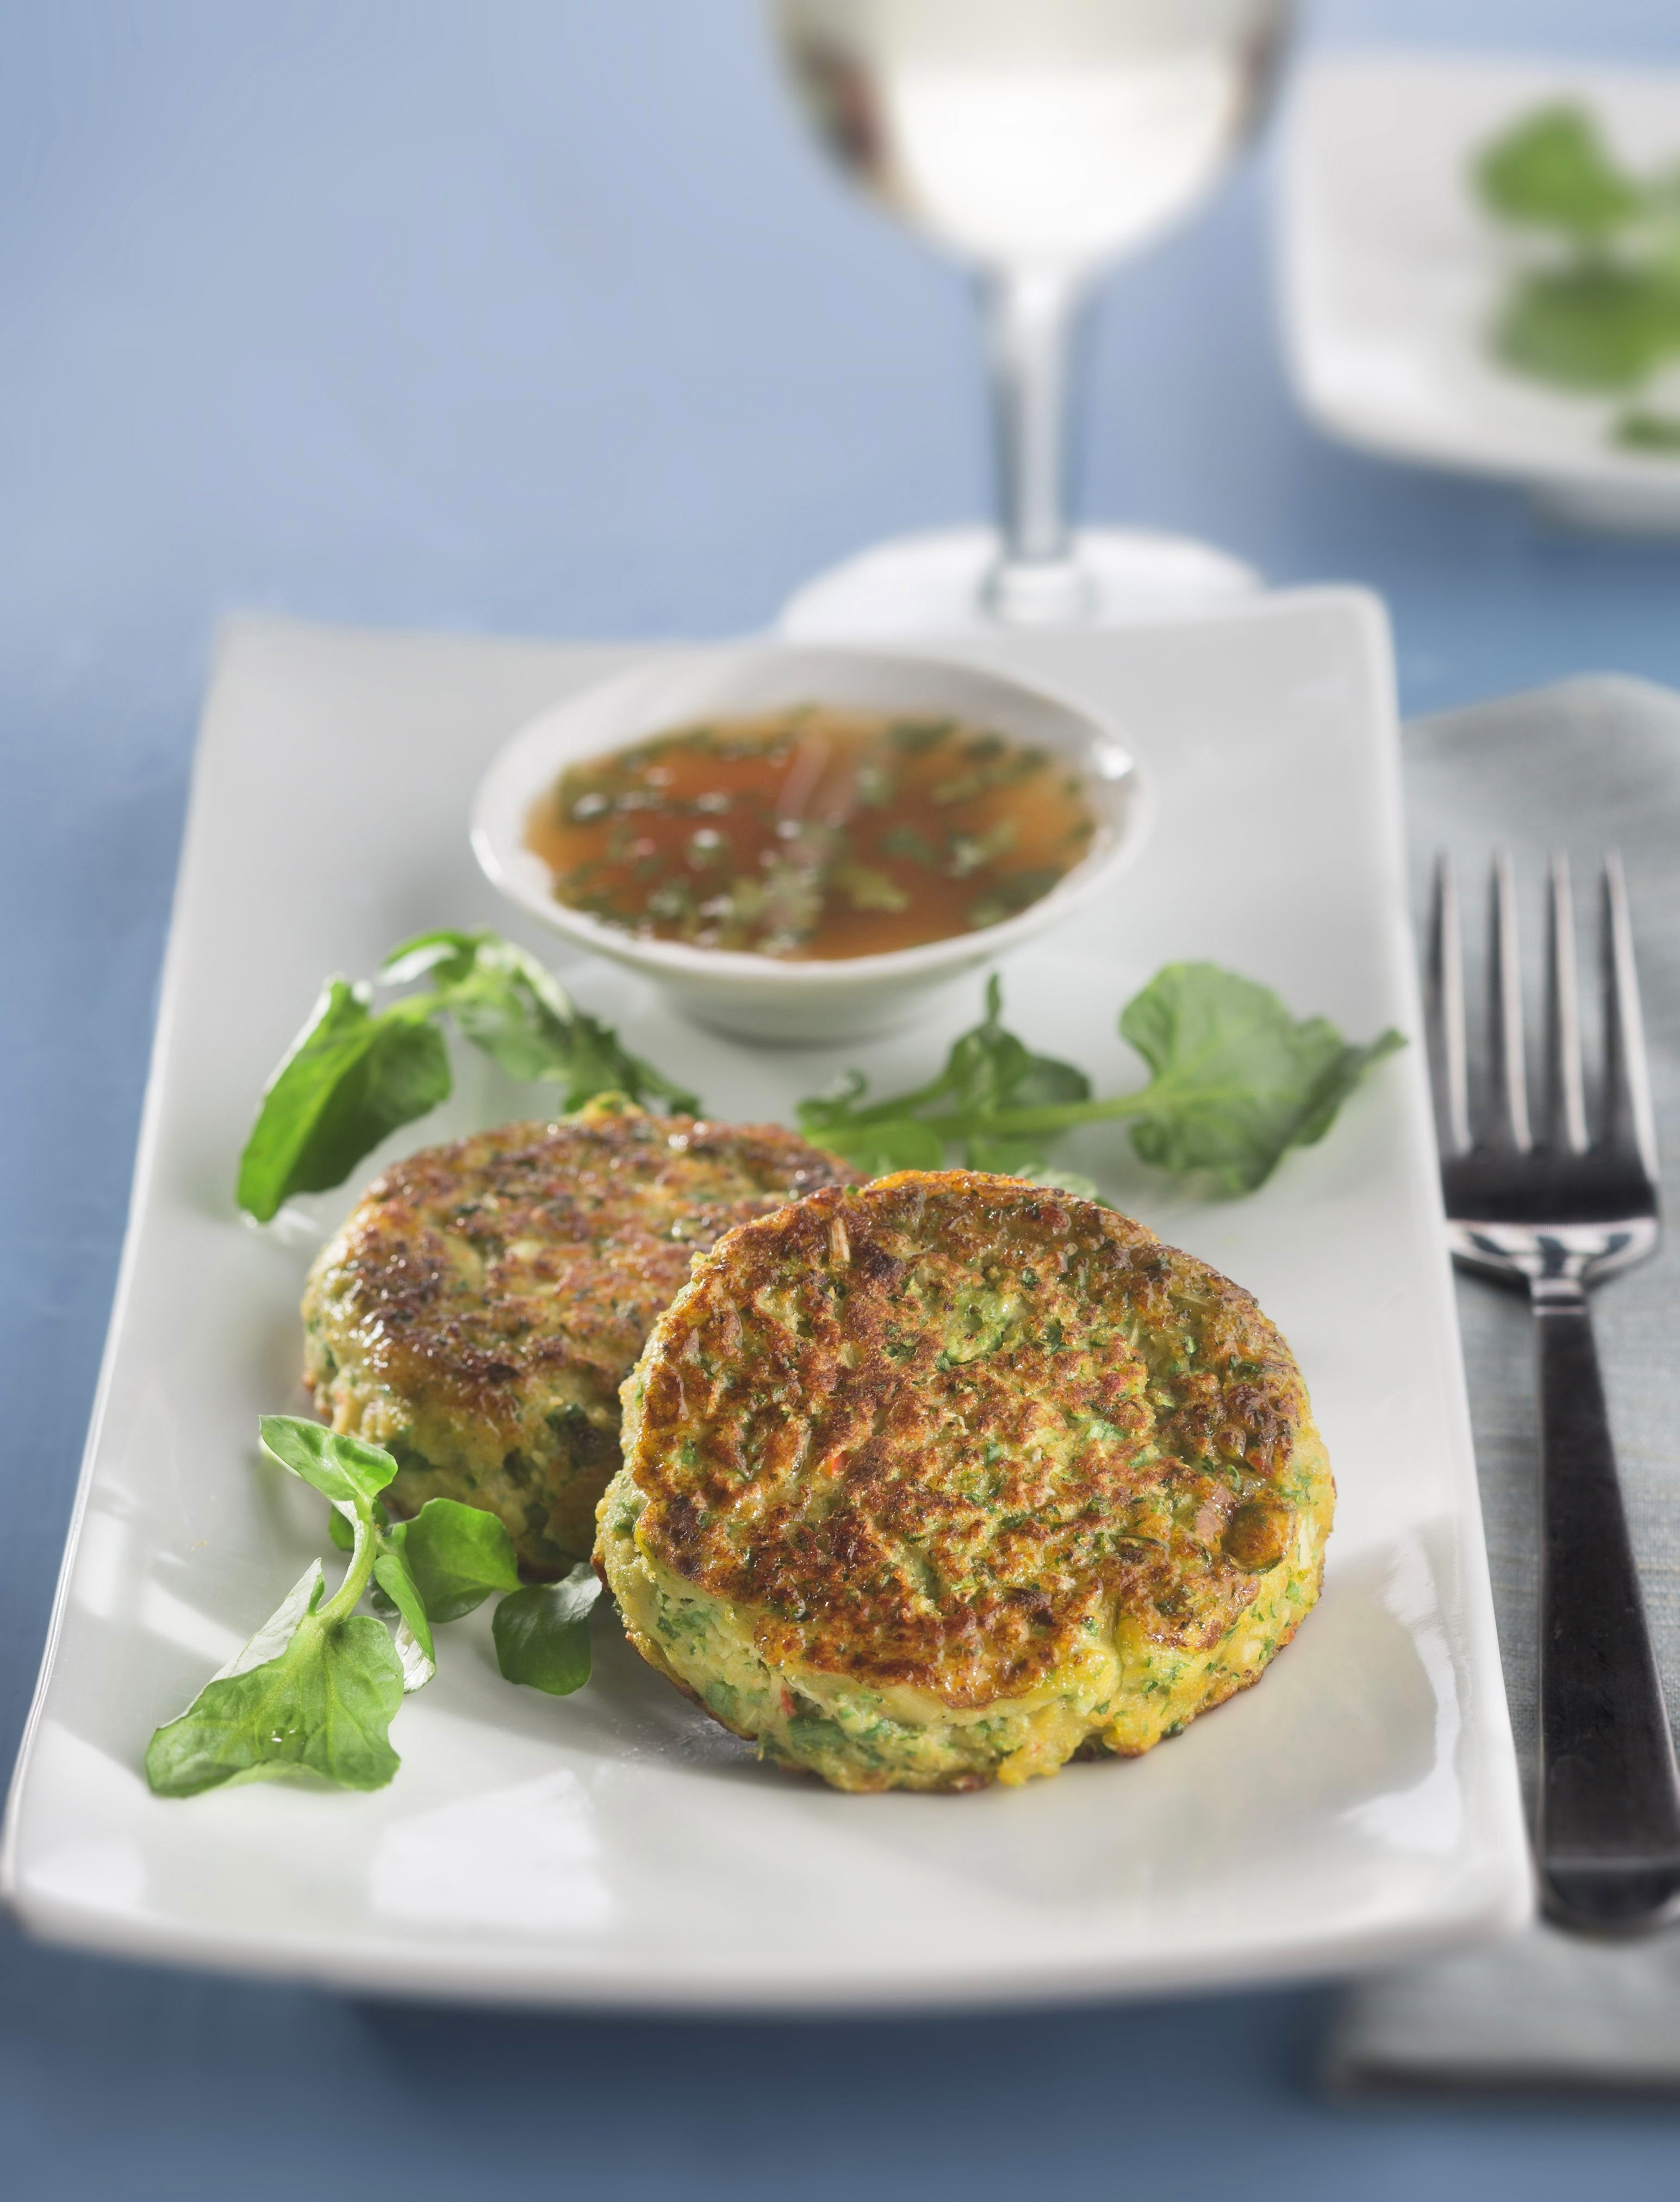 Spicy fish cakes with citrus sauce make for a light Lenten meal.